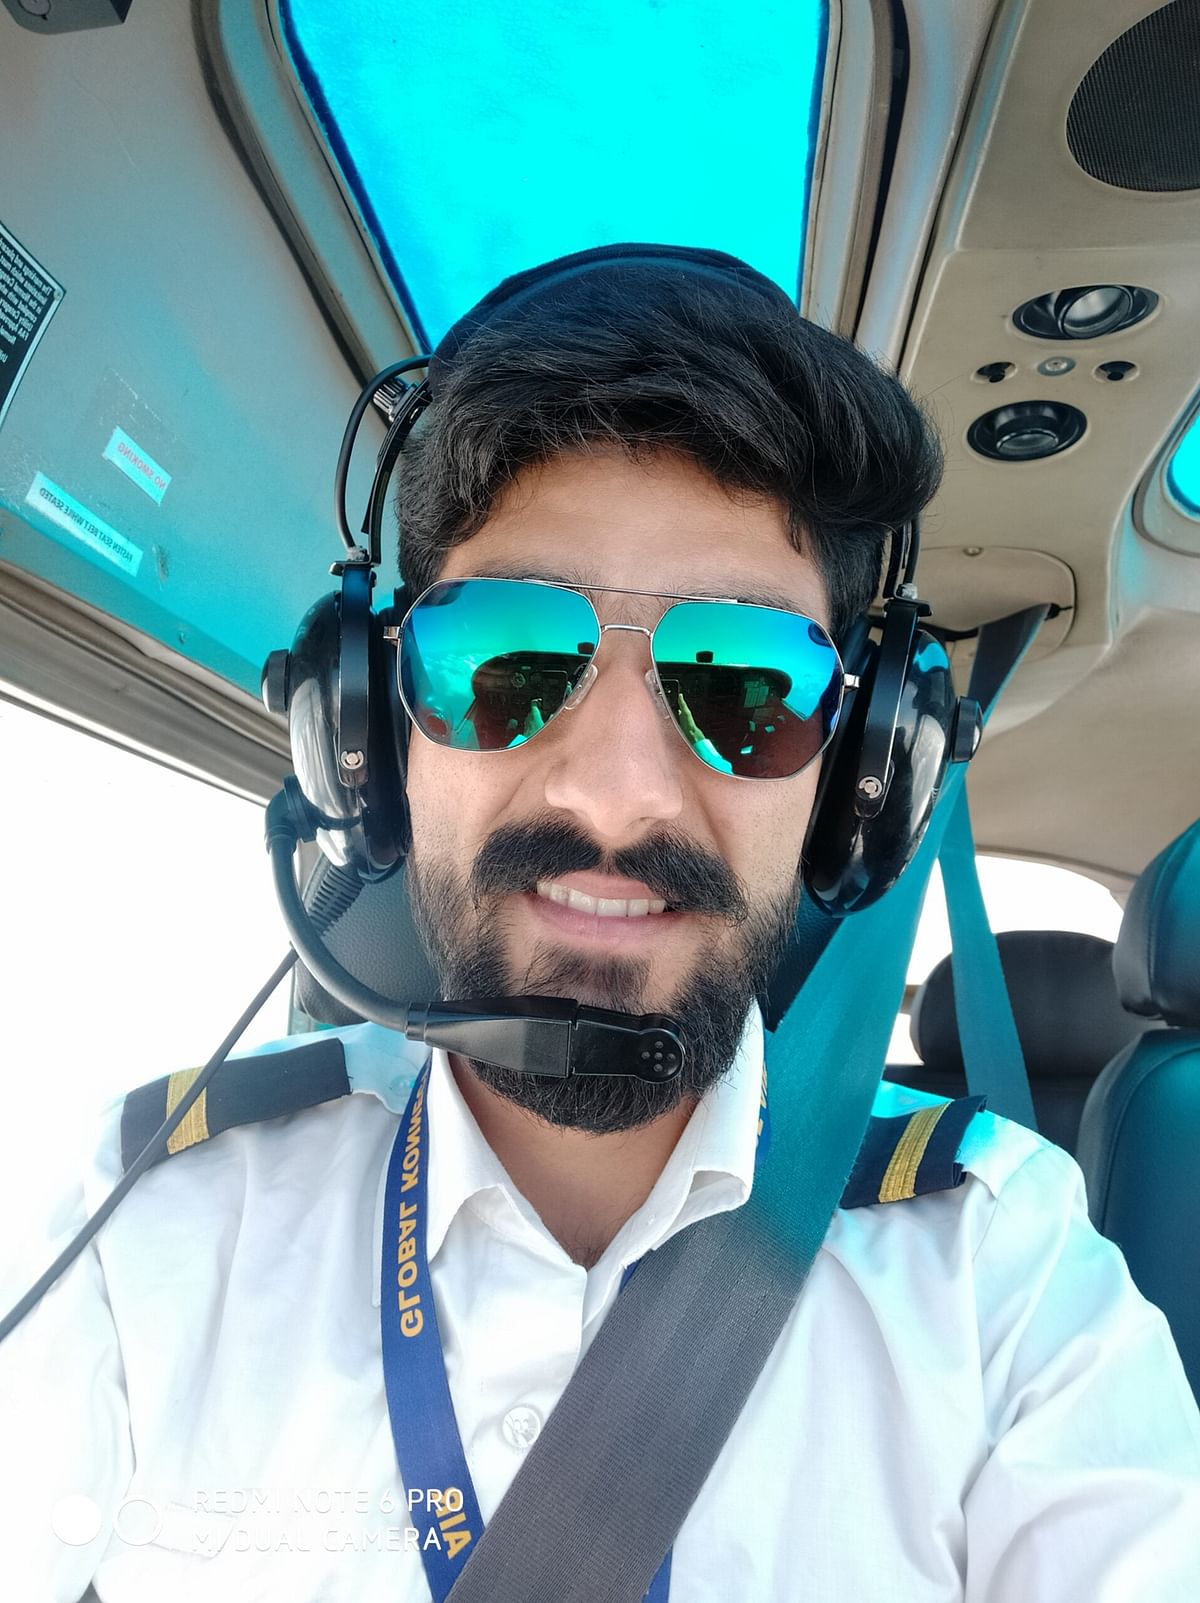 Fascinated by jets in his childhood, Farhan Majeed is now Kashmir's youngest commercial pilot